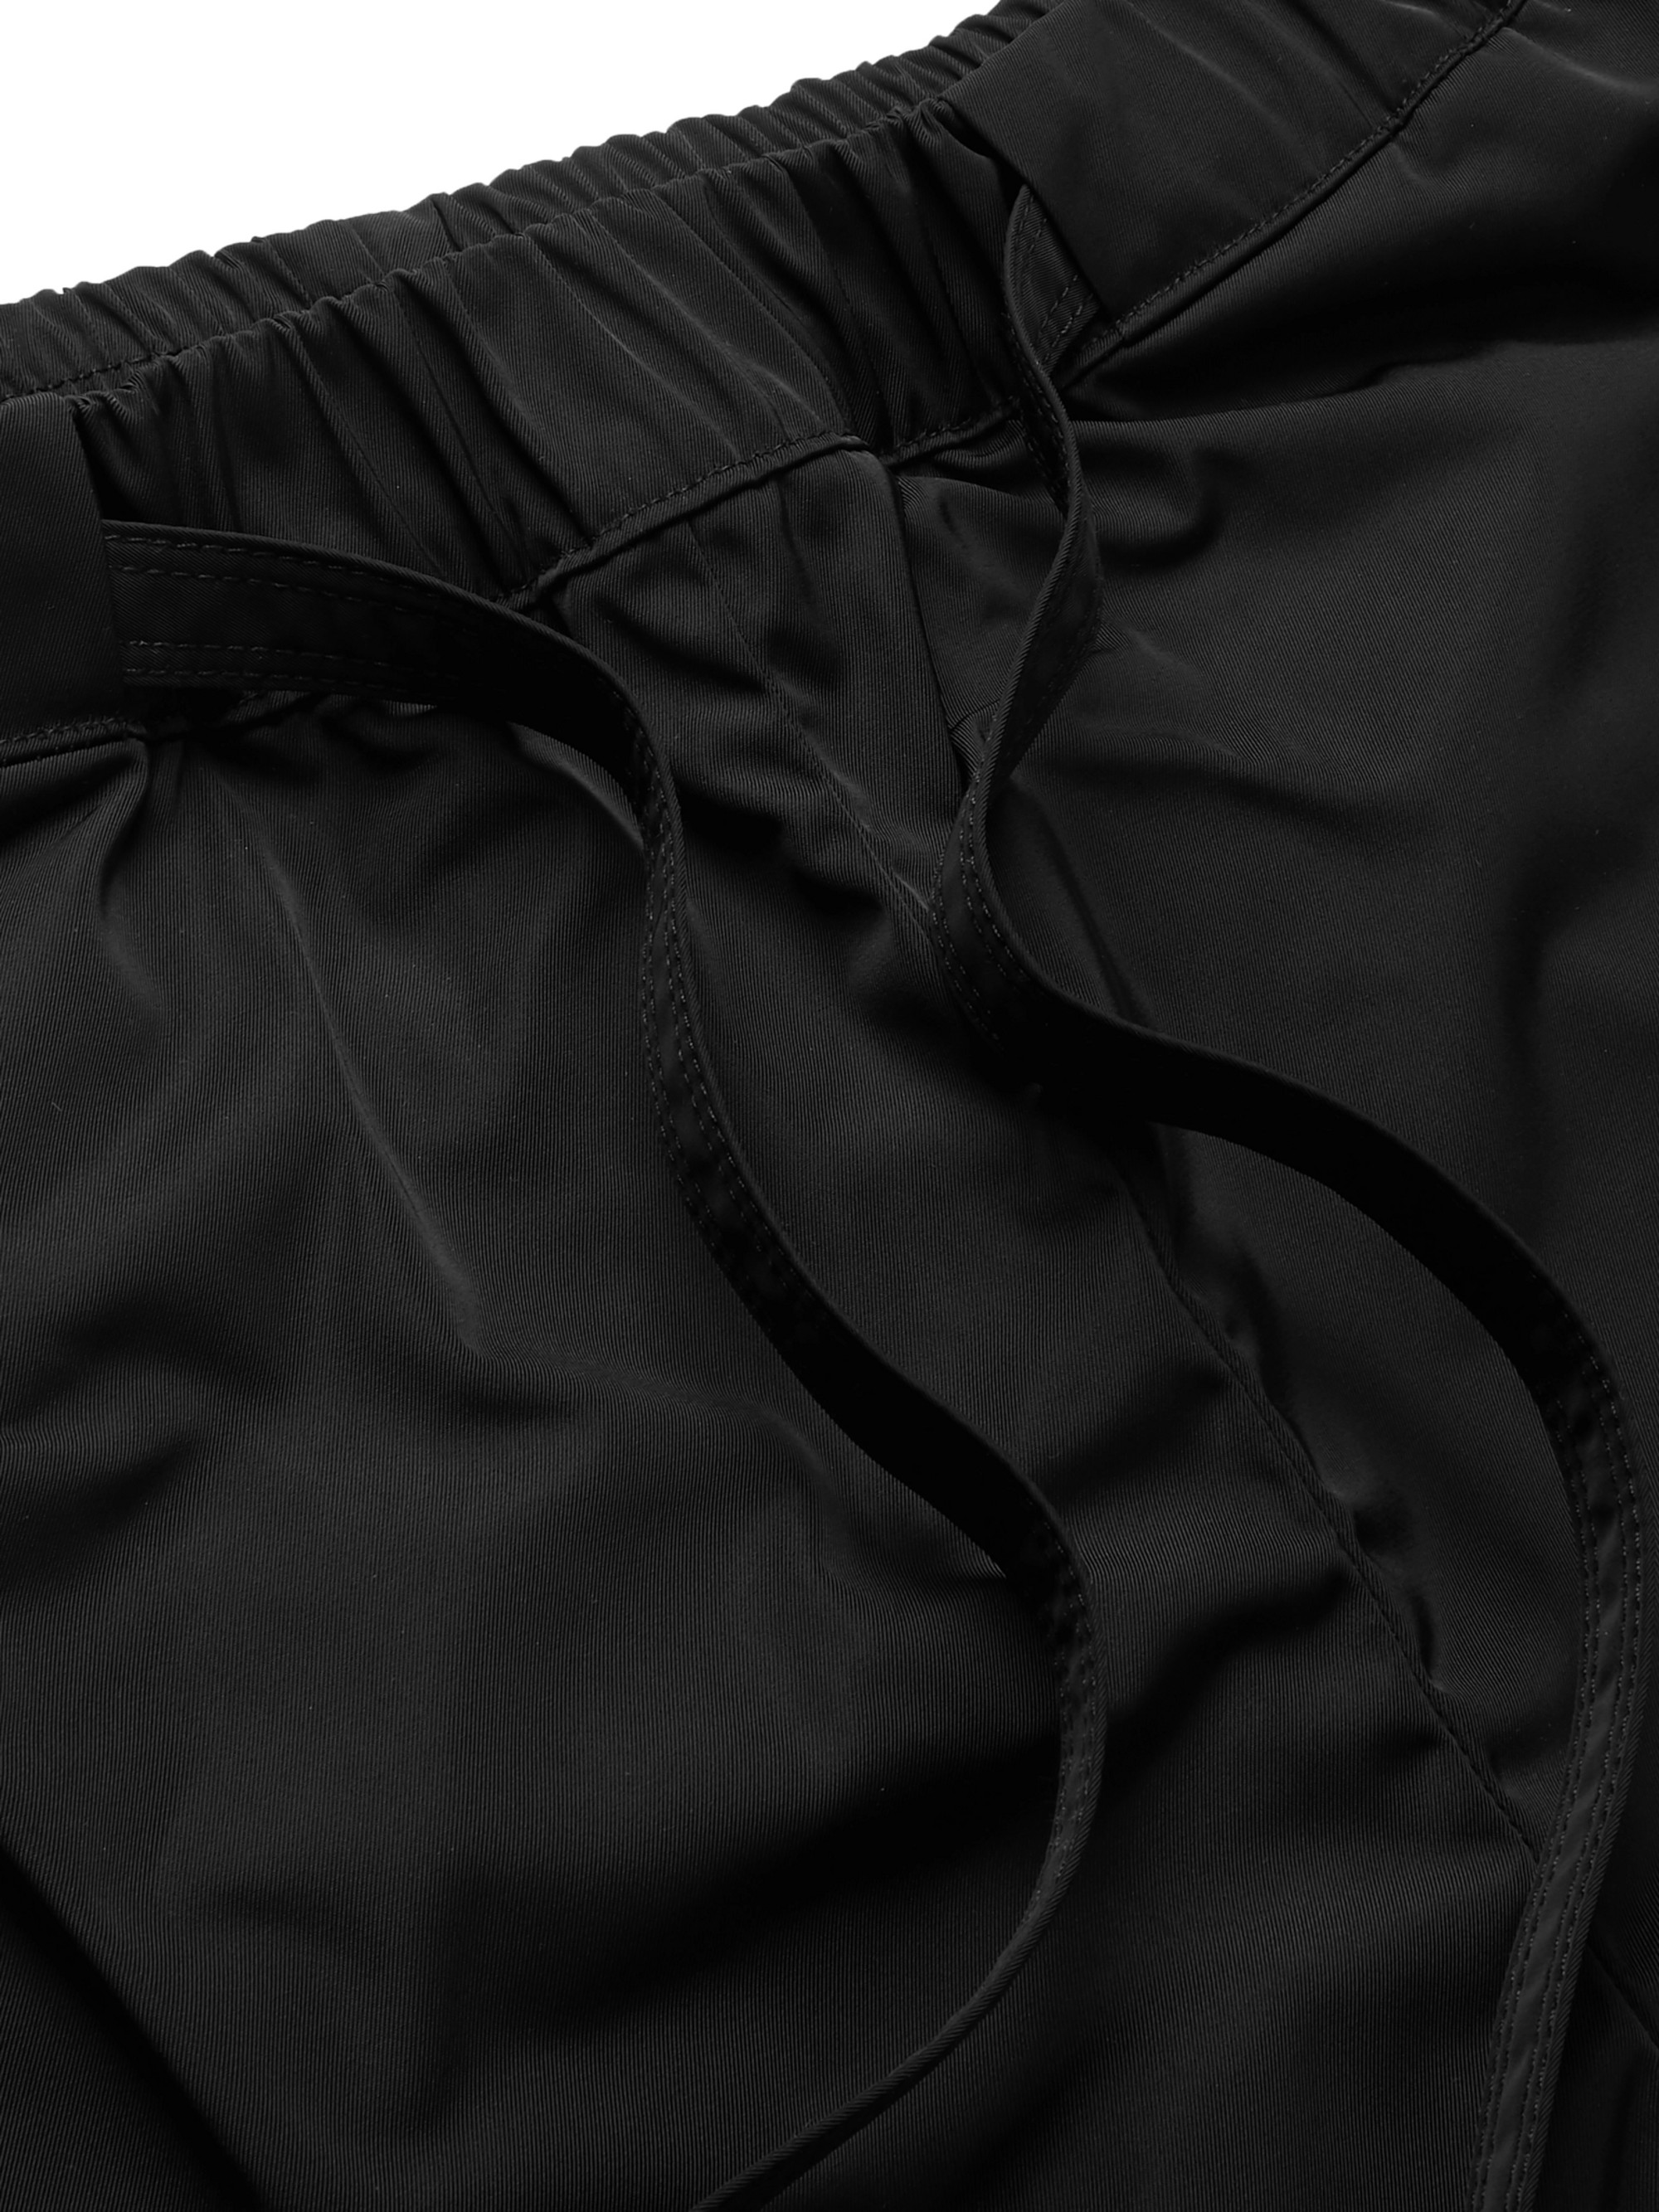 Fear of God Belted Nylon Drawstring Trousers